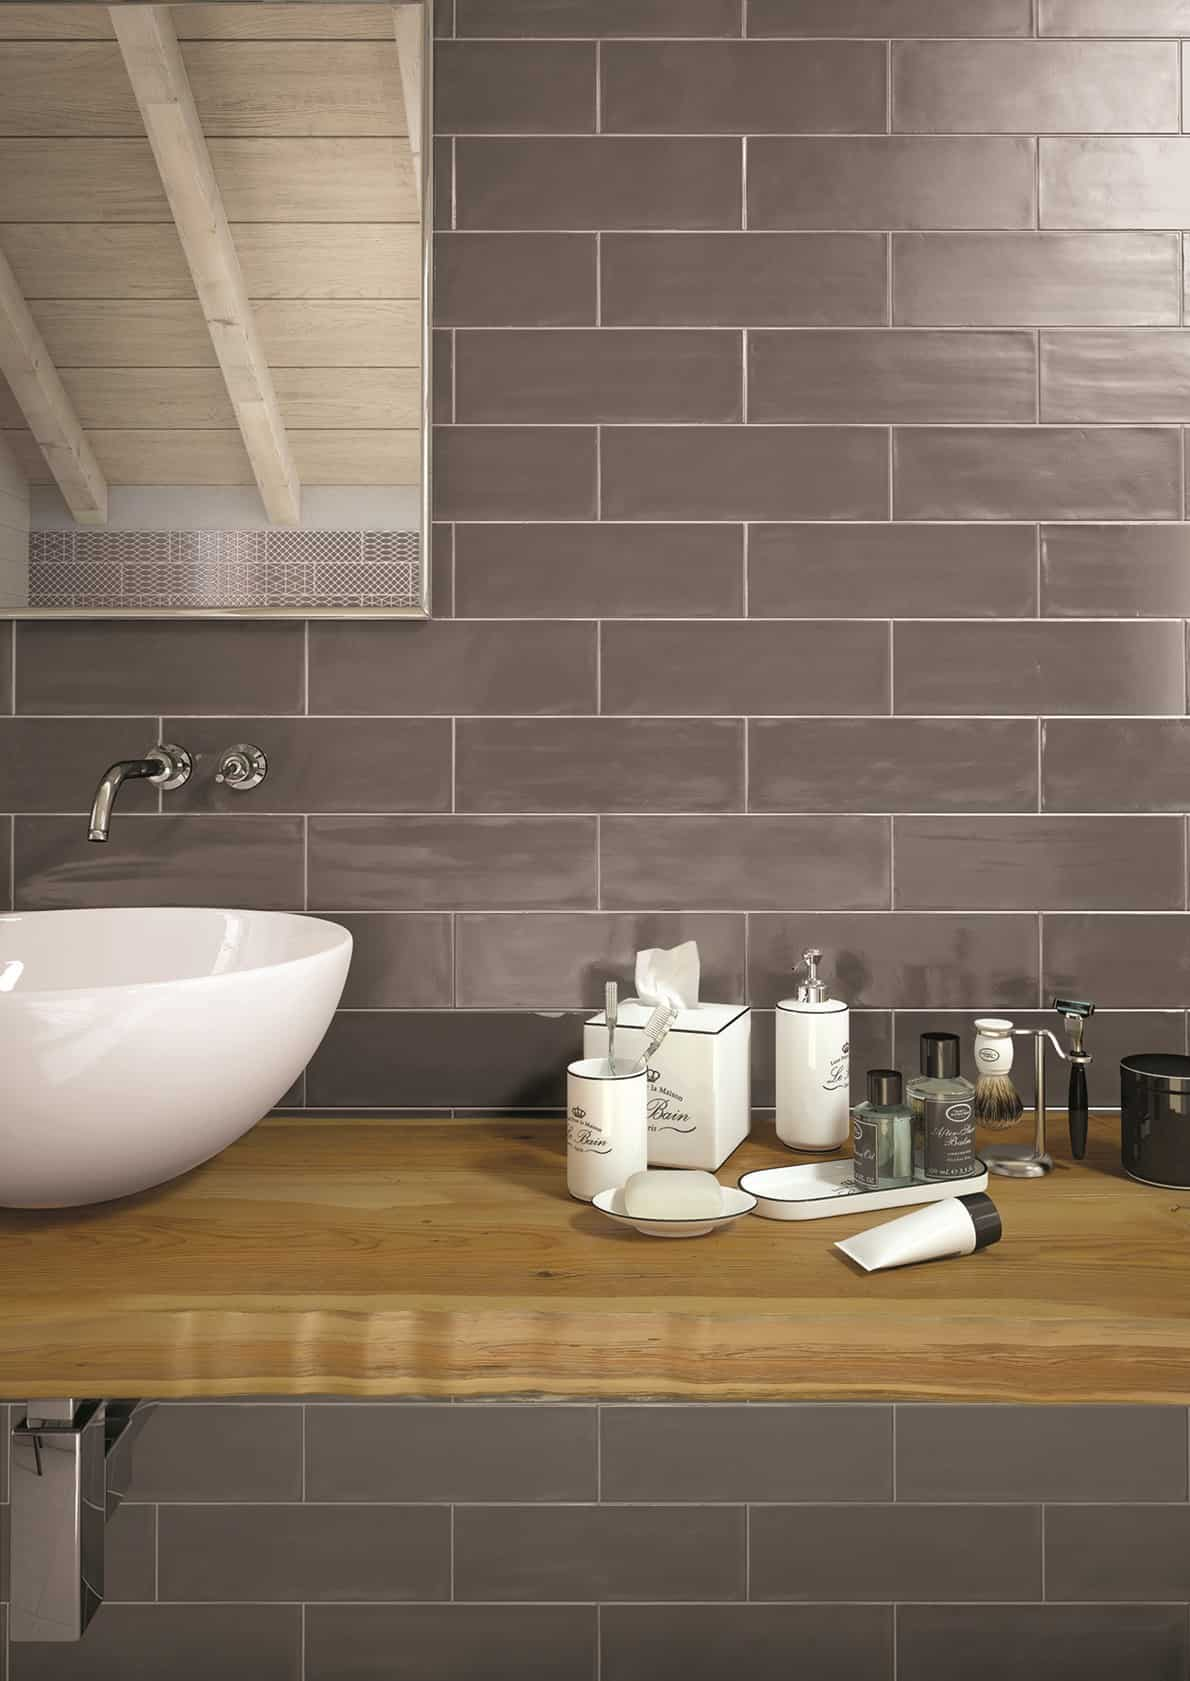 Tiling Walls In Brick Tile Pattern Is Easy With The New Glossy Brick By Ragno